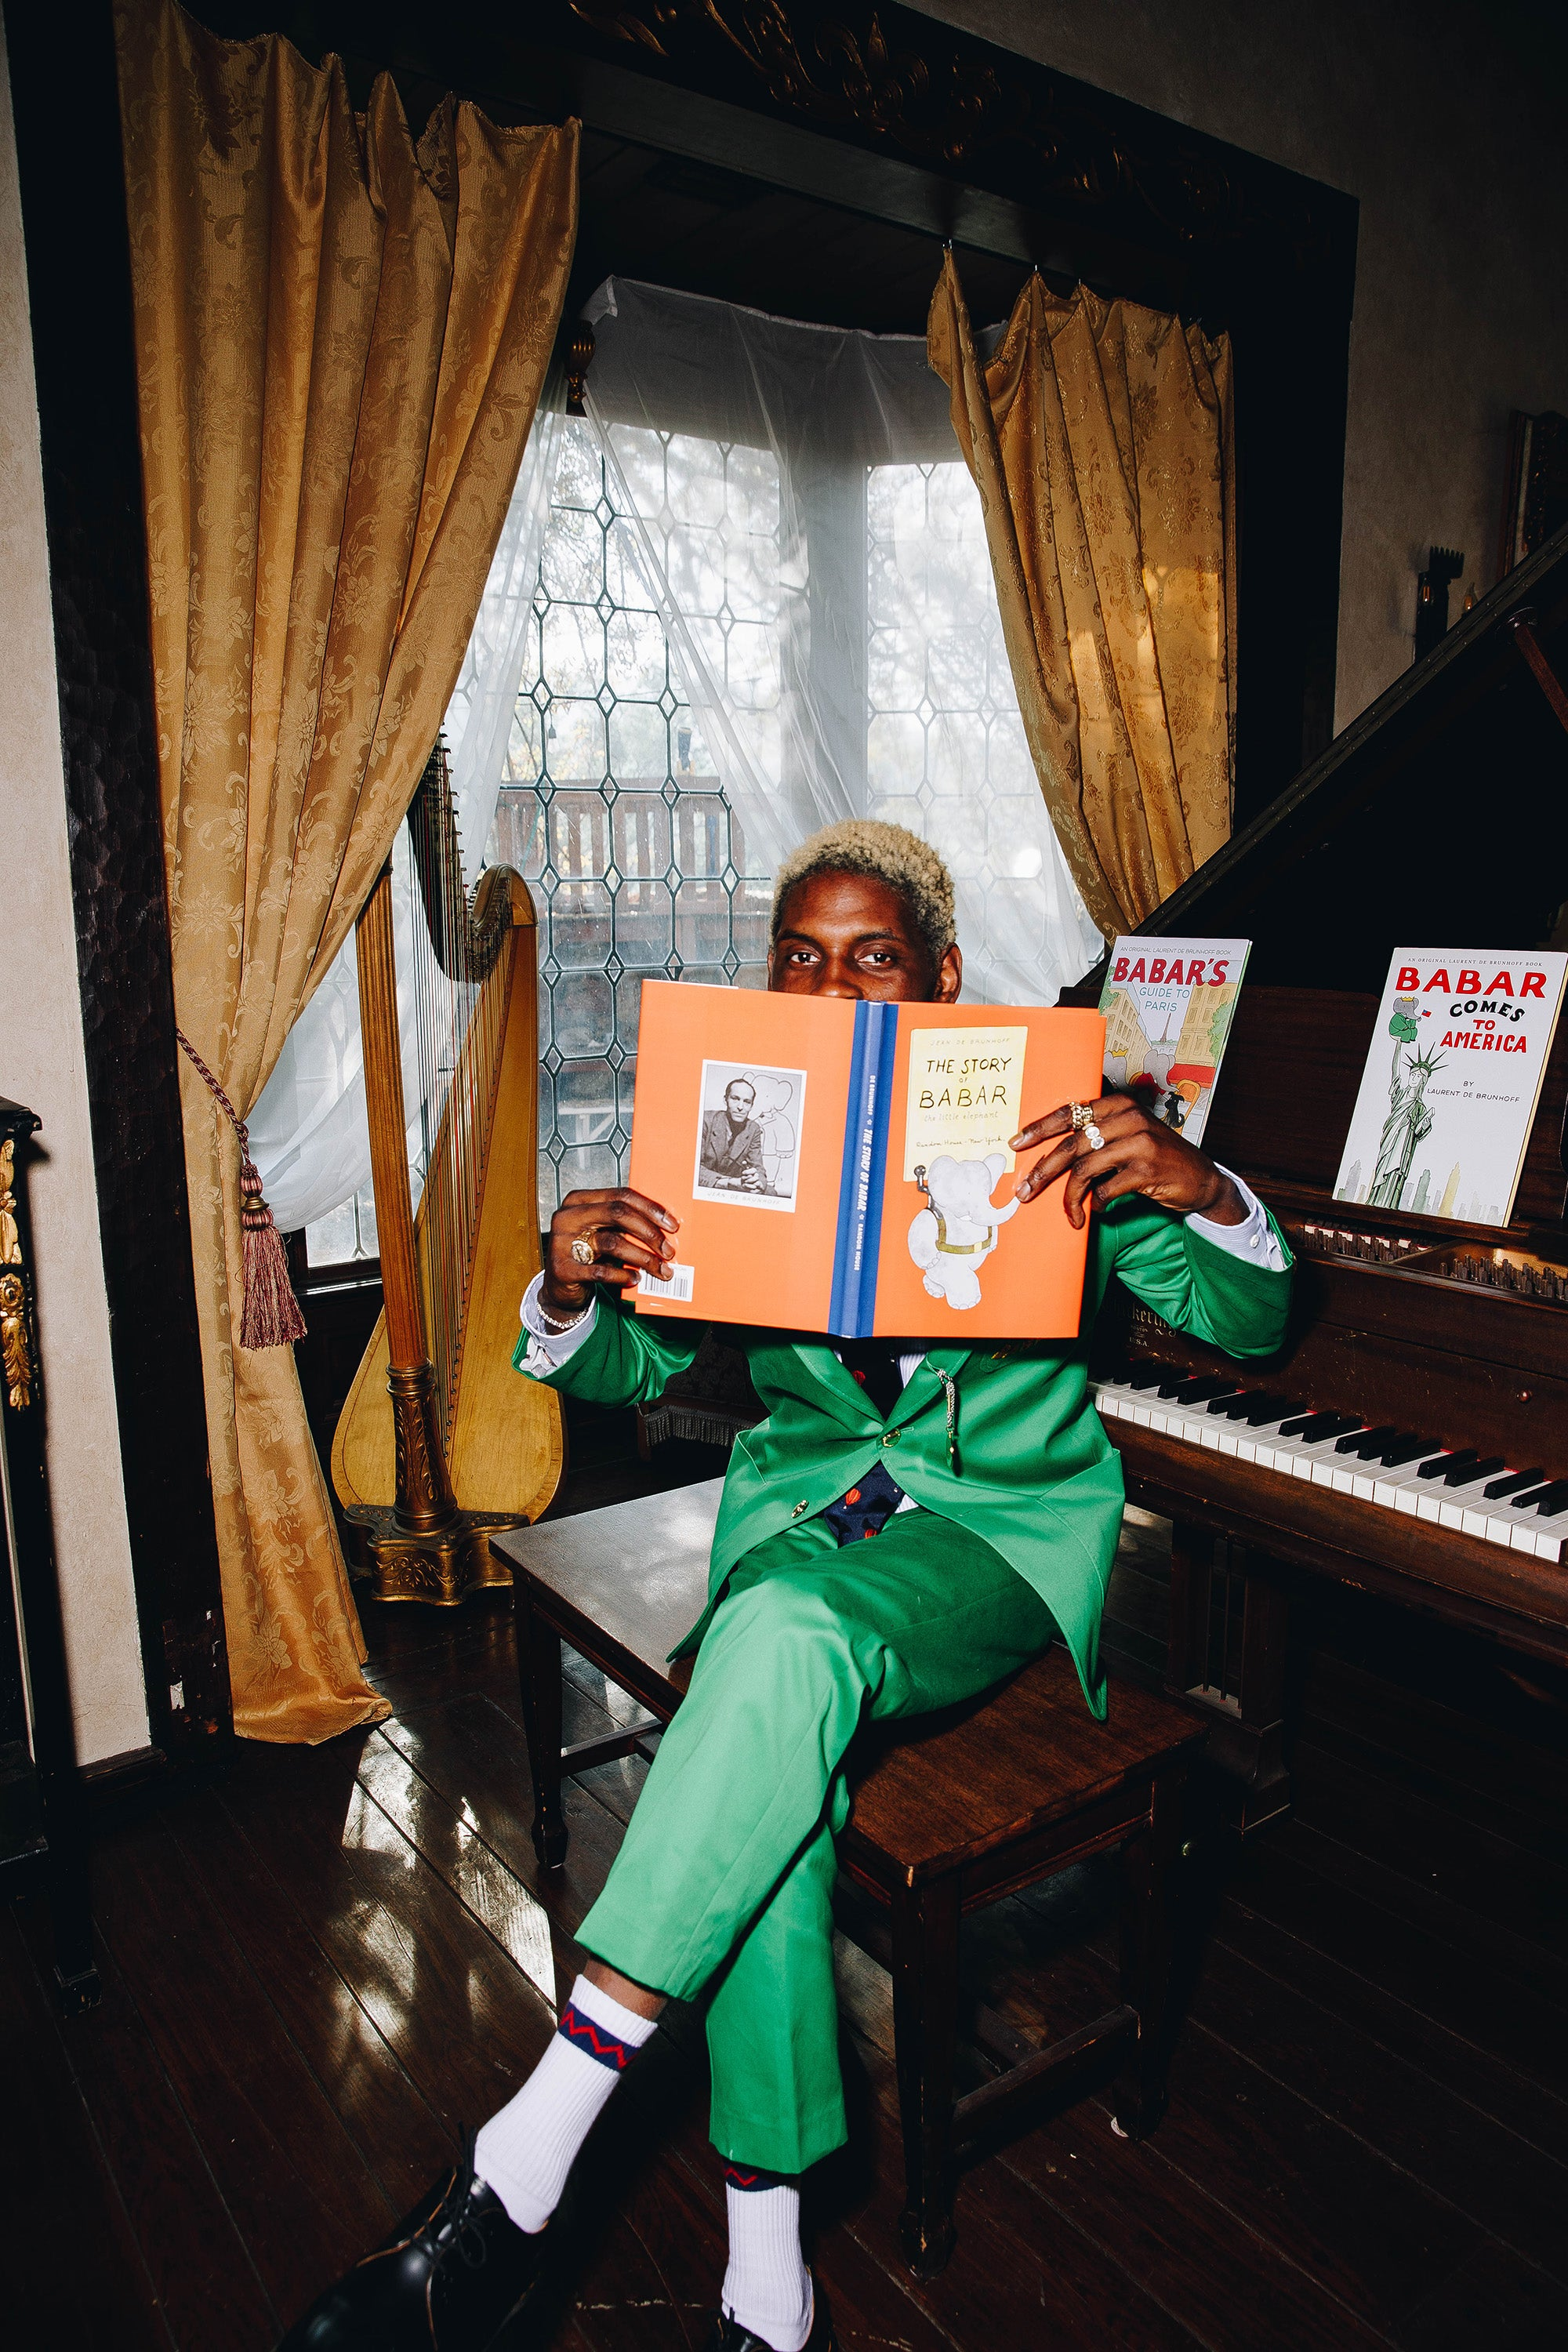 A$AP Nast wearing the Babar Jacket in Trousers in green